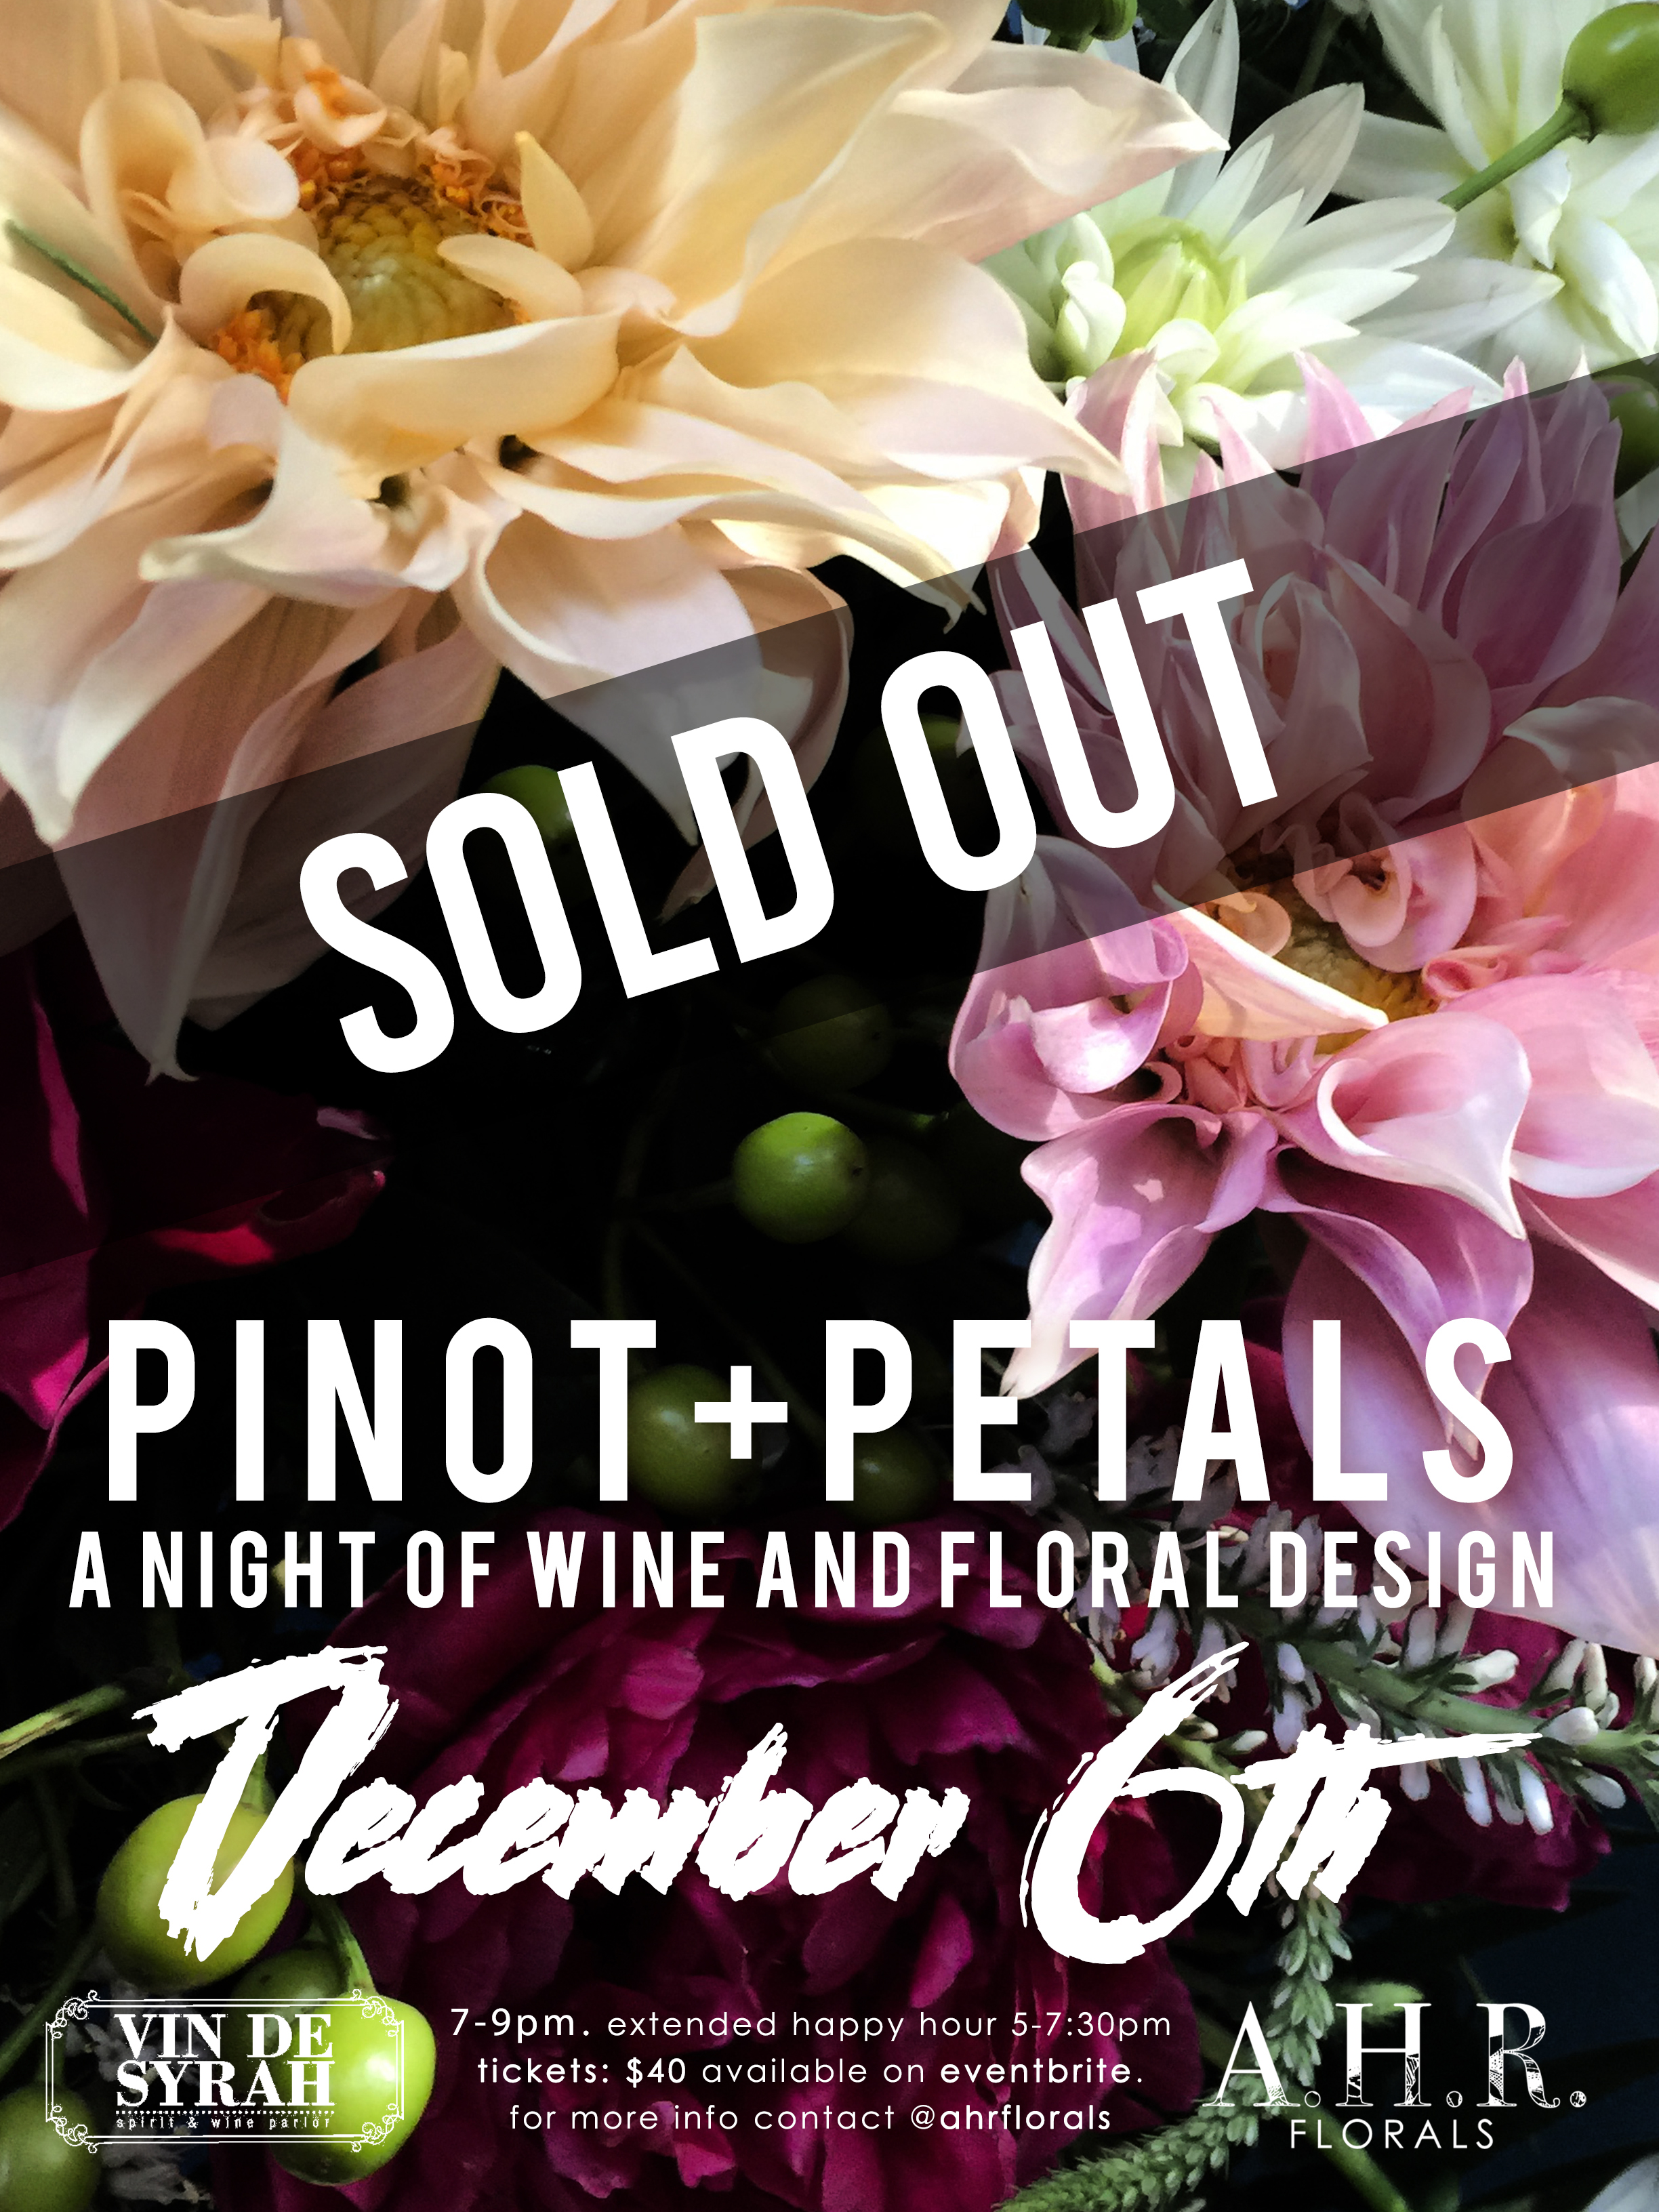 Pinot-and-Petals-San-Diego-December-6th-wine-and-flower-sold-out.jpg